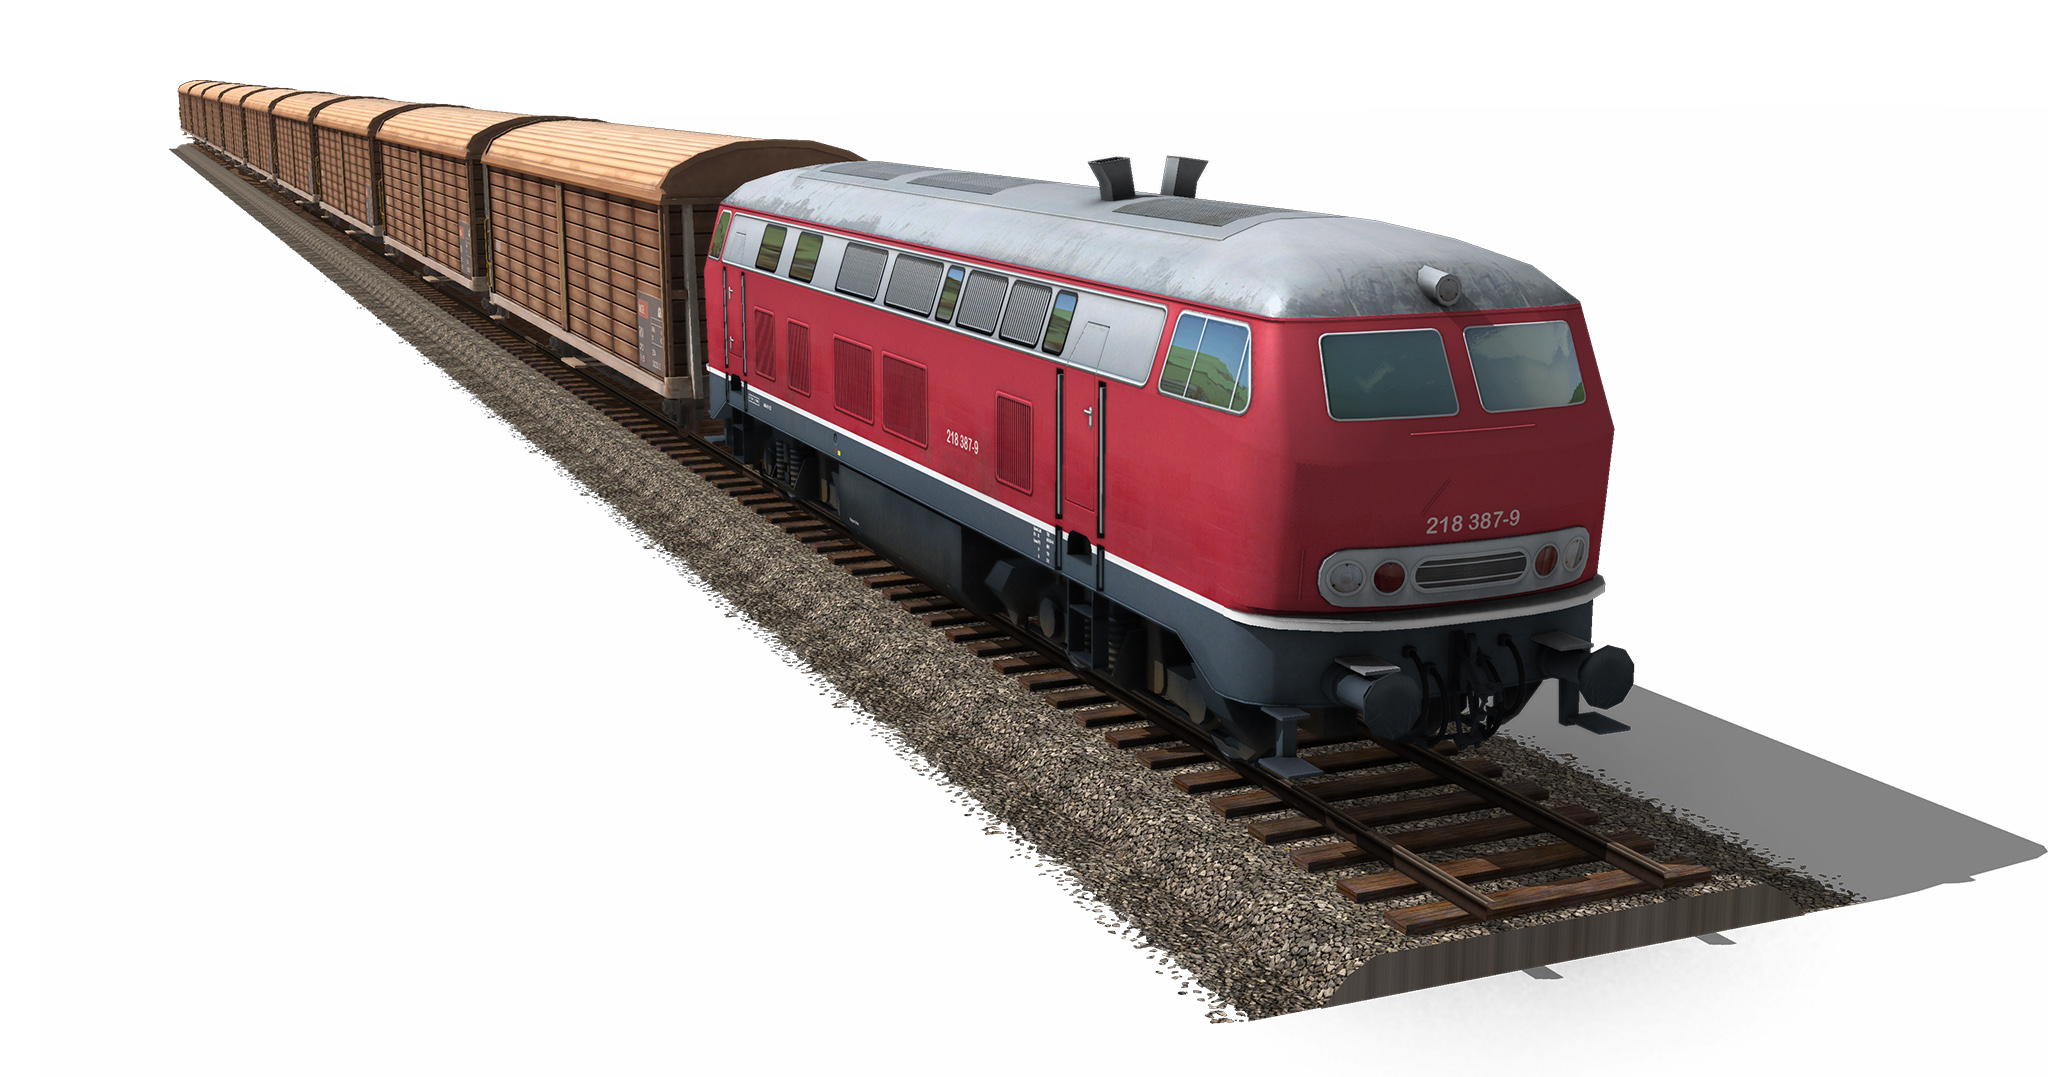 PNG Image Of Train - 48344